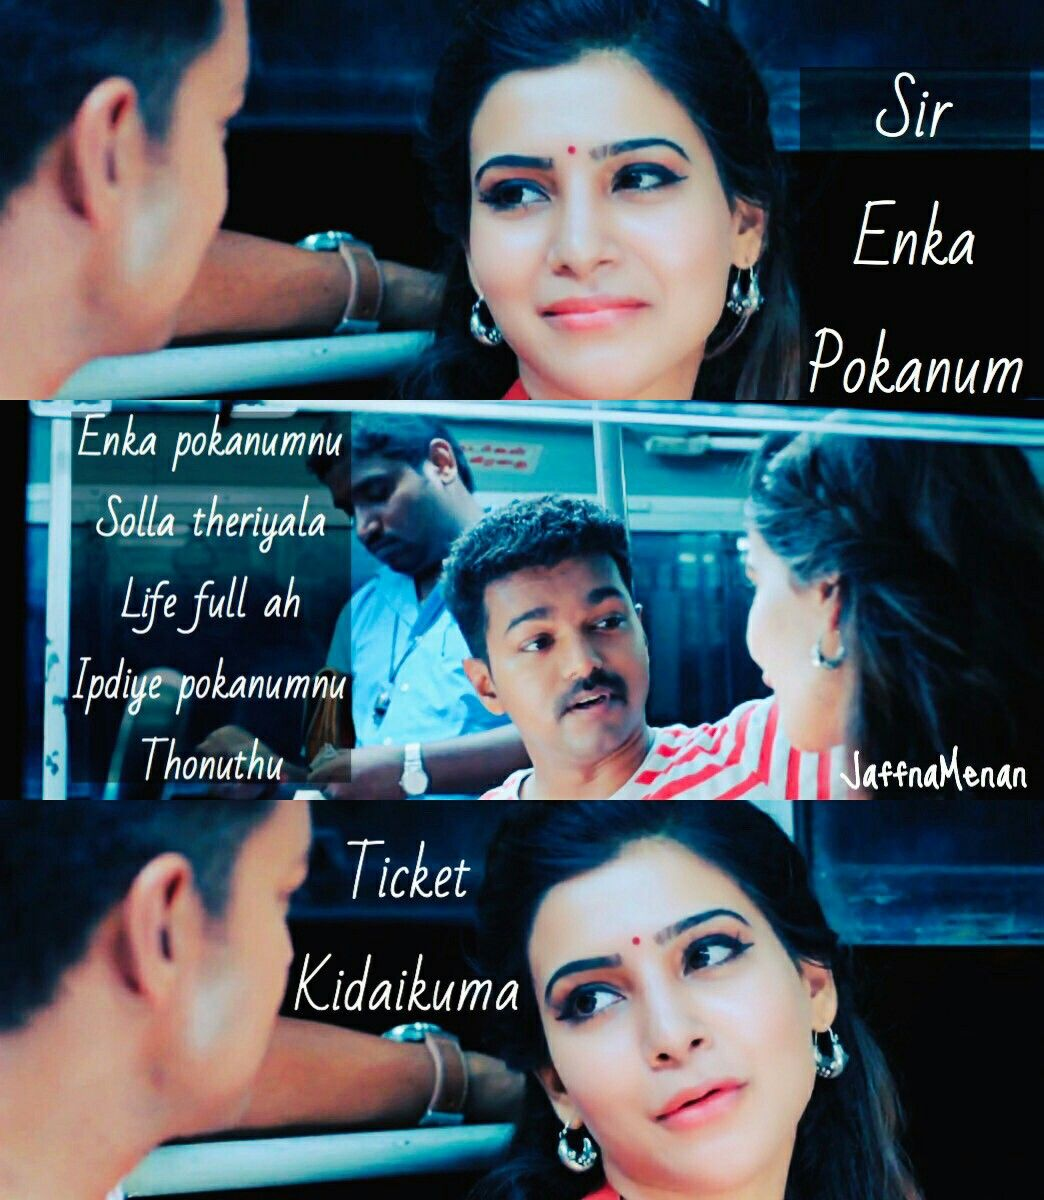 Theri Movie Love Images With Quotes: Pin By Indirani Shanmugam On My Favorite Movies Quotes